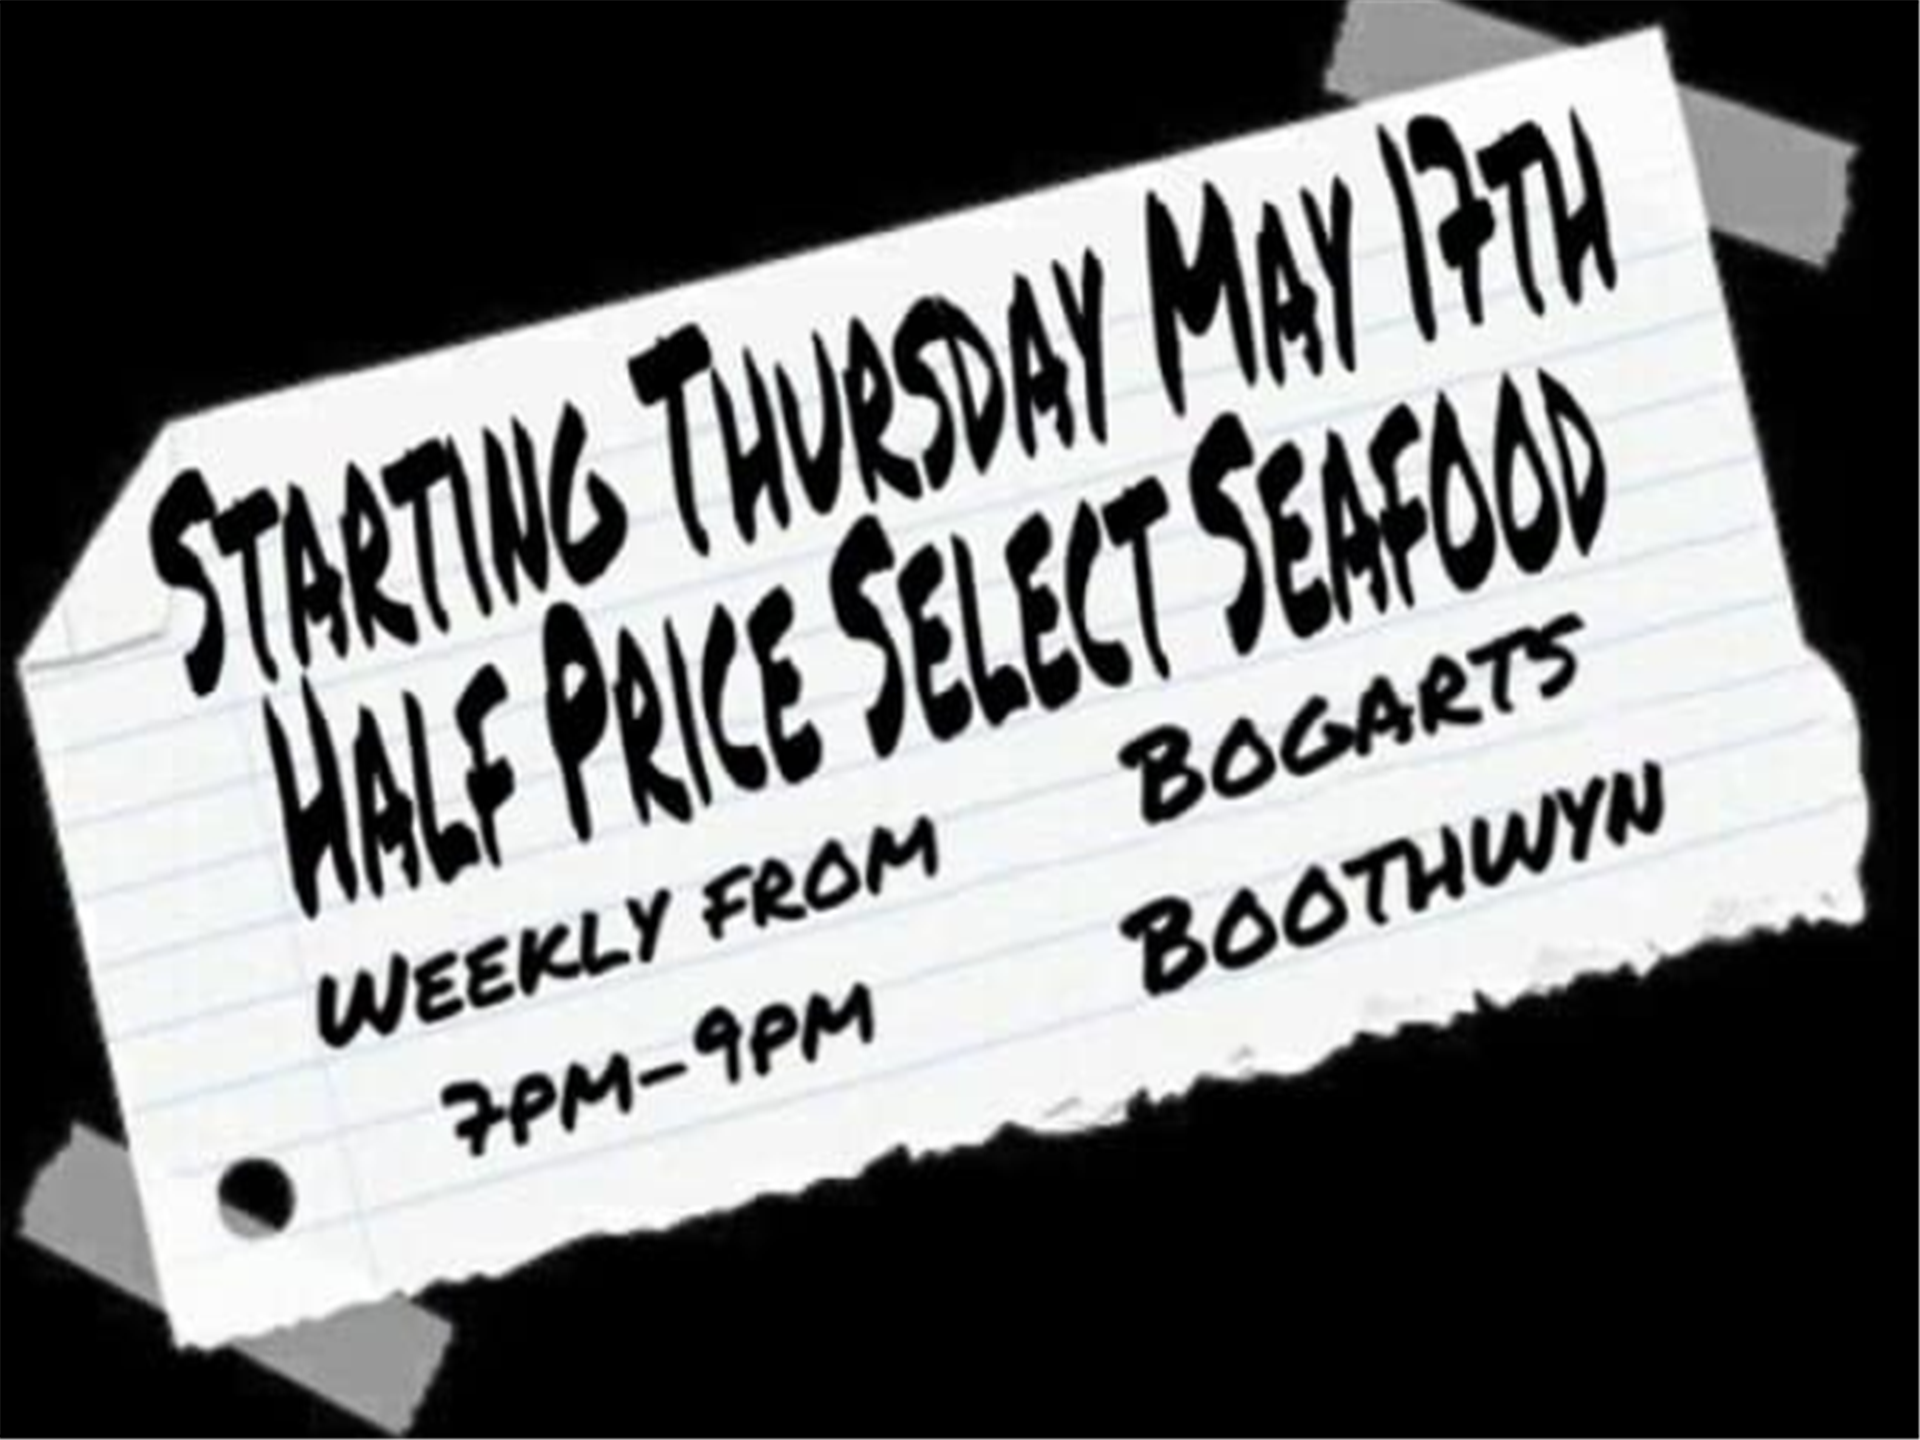 starting thursday may 17th half price select seafood weekly from 7pm-9pm at bogarts boothwyn